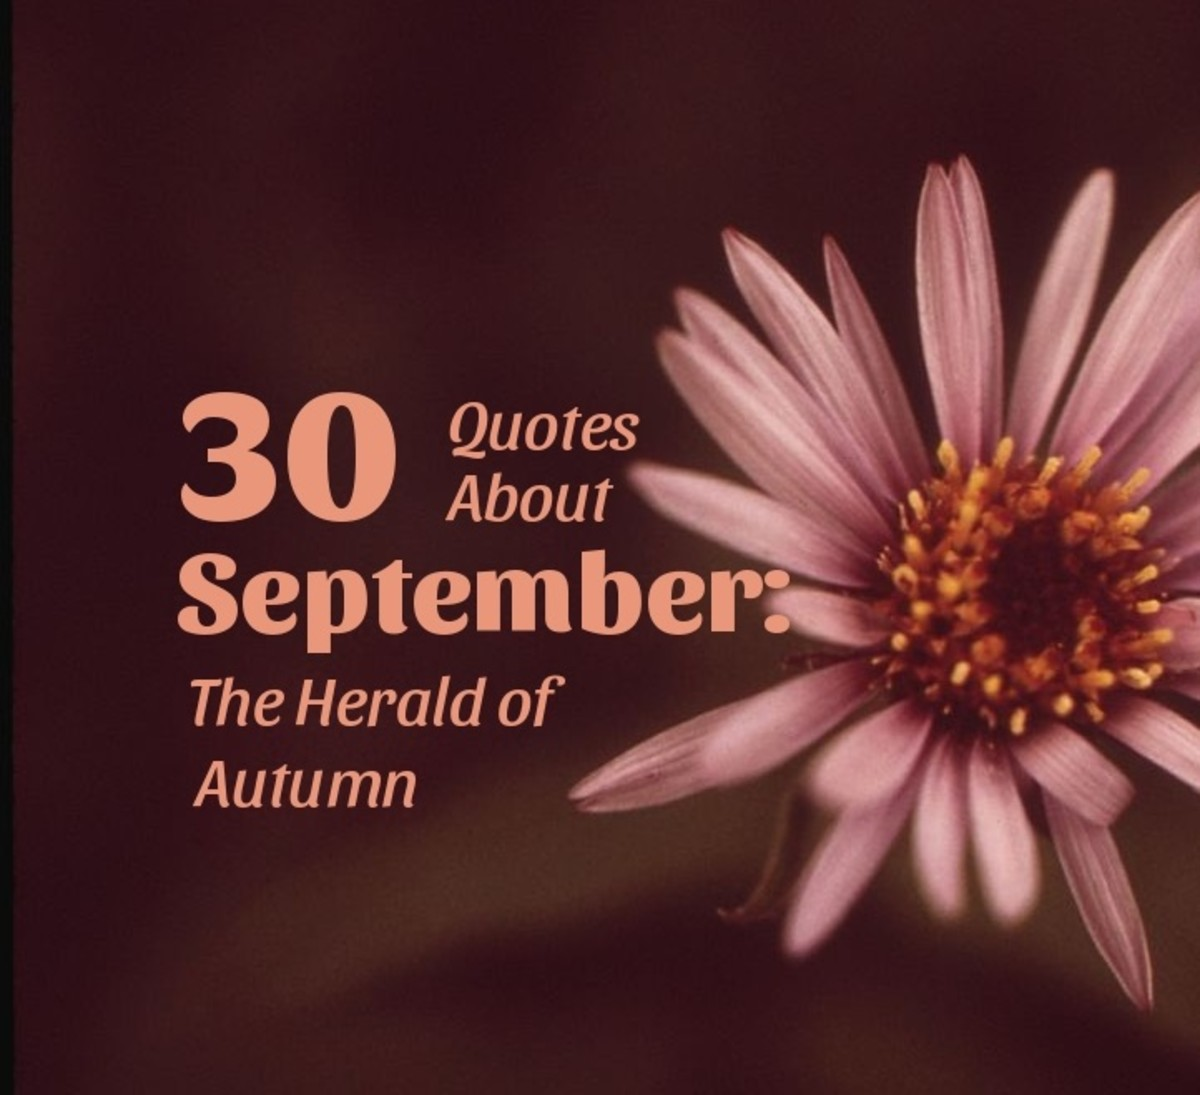 The aster is one of September's birth flowers.